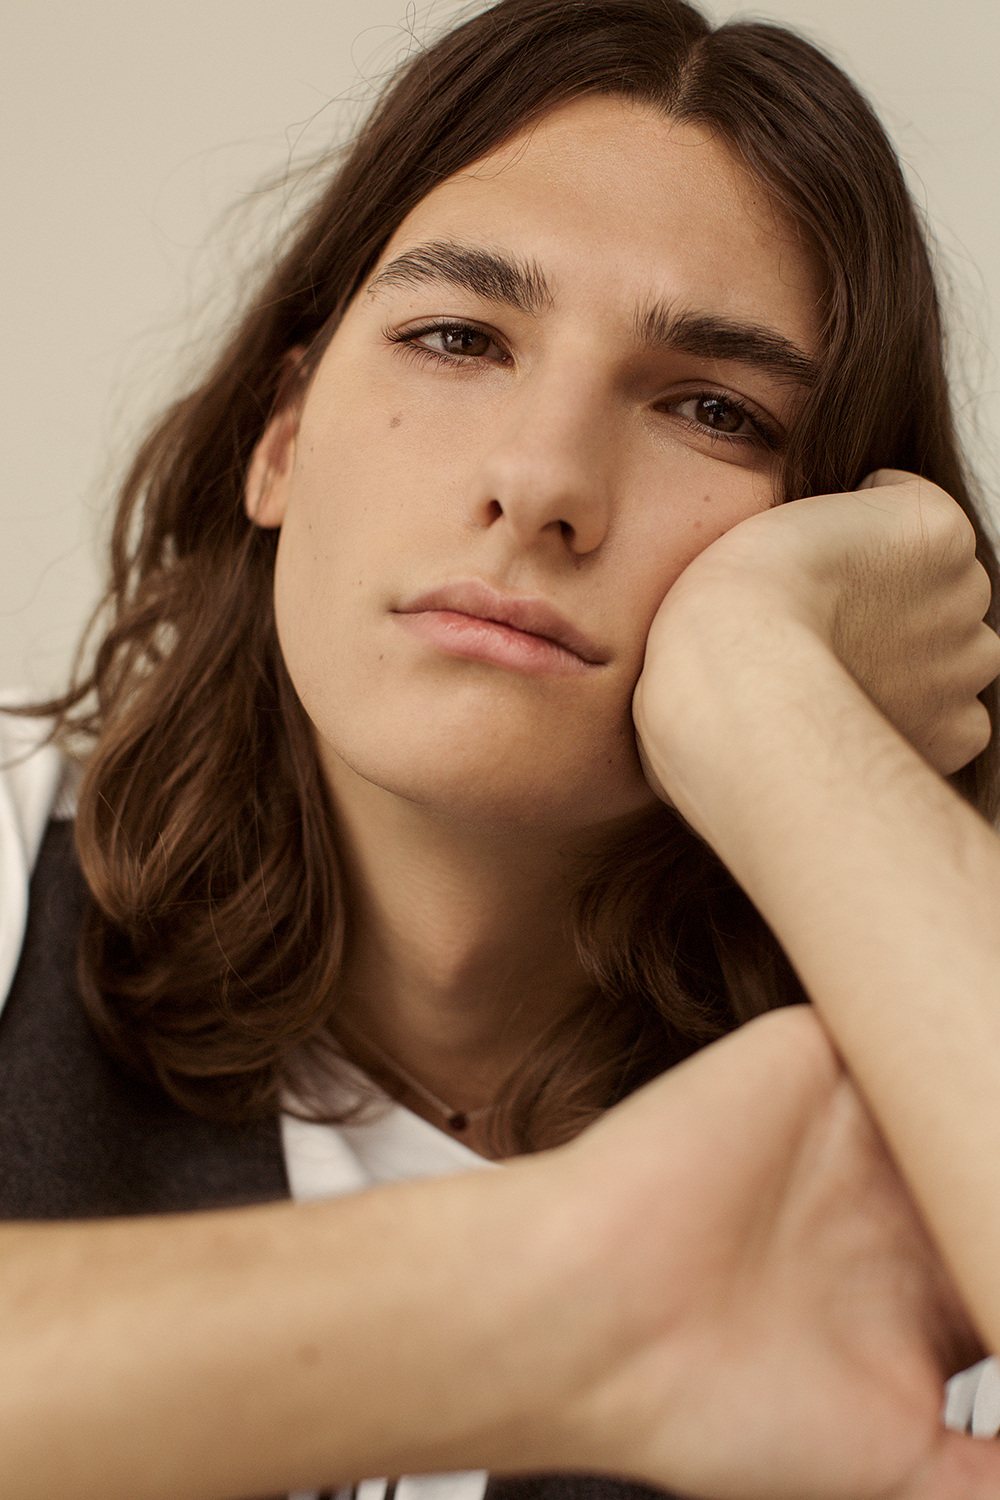 Everything You Ever Wanted to Know About Male Models Beauty Regimes